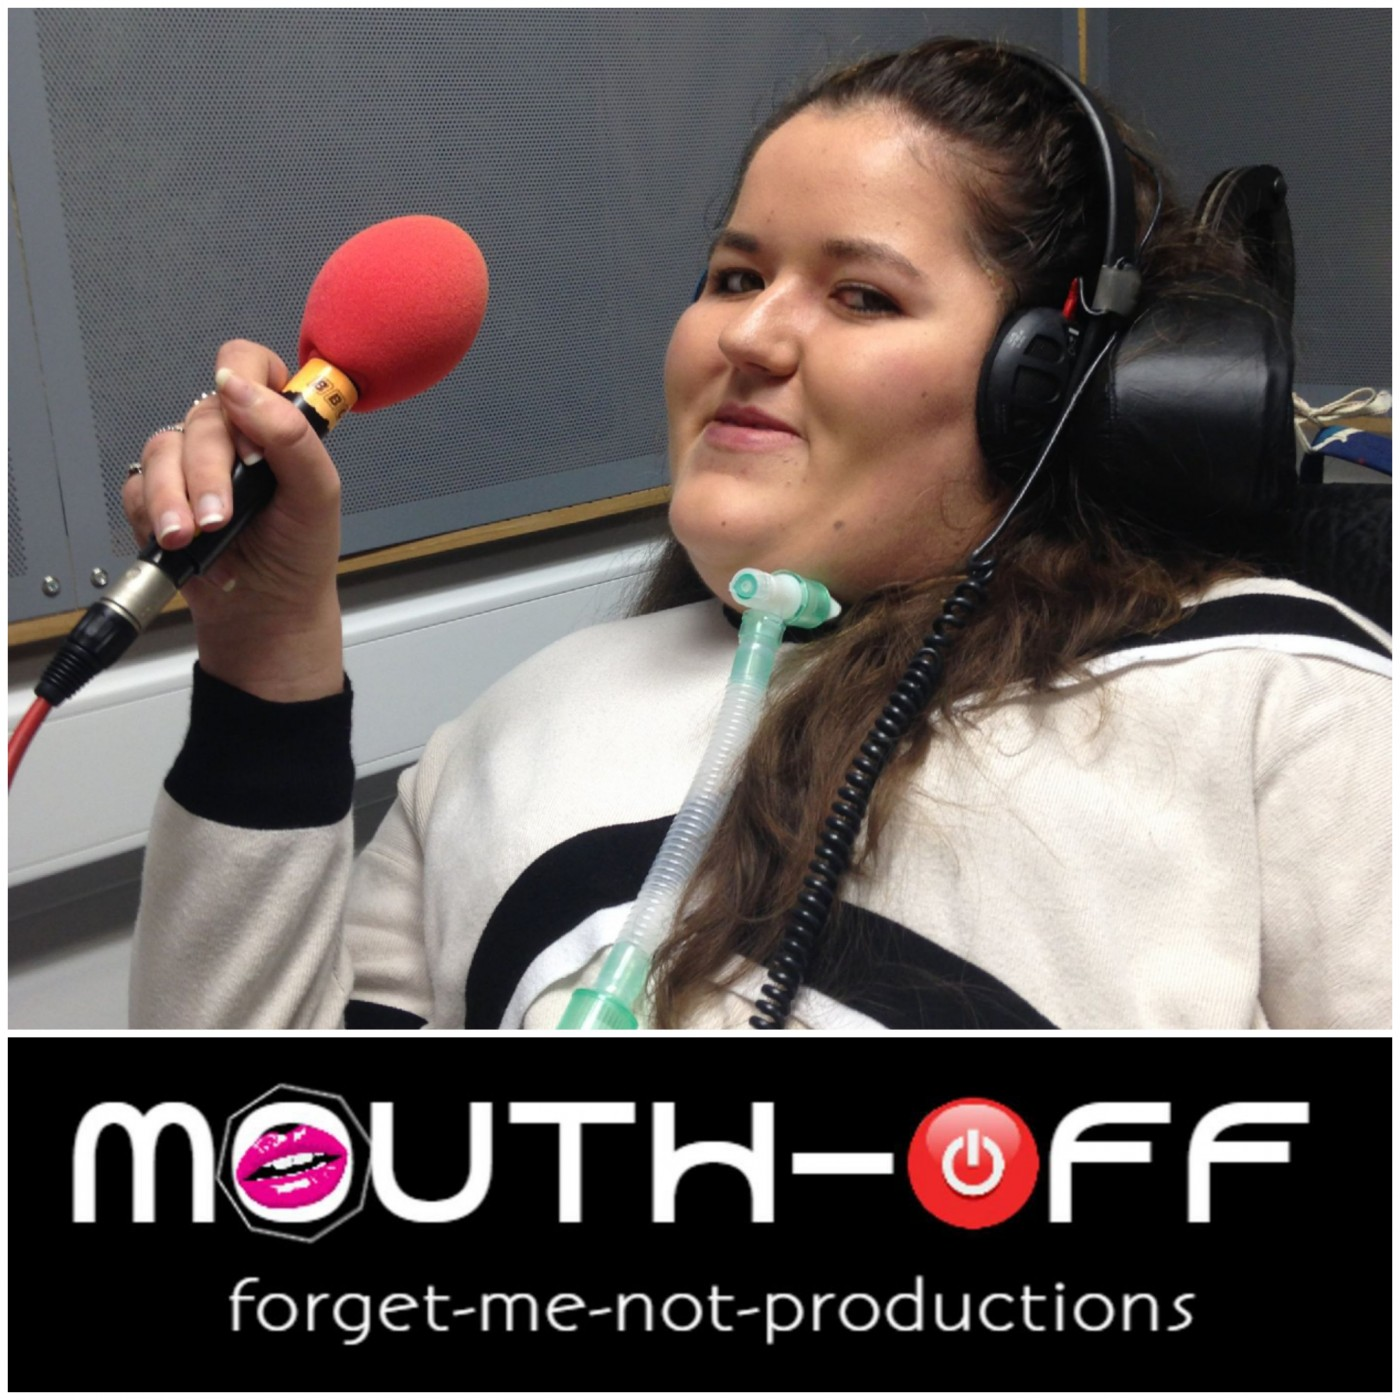 Mouth-Off Episode 14: Activism, Ableism and Accessibility